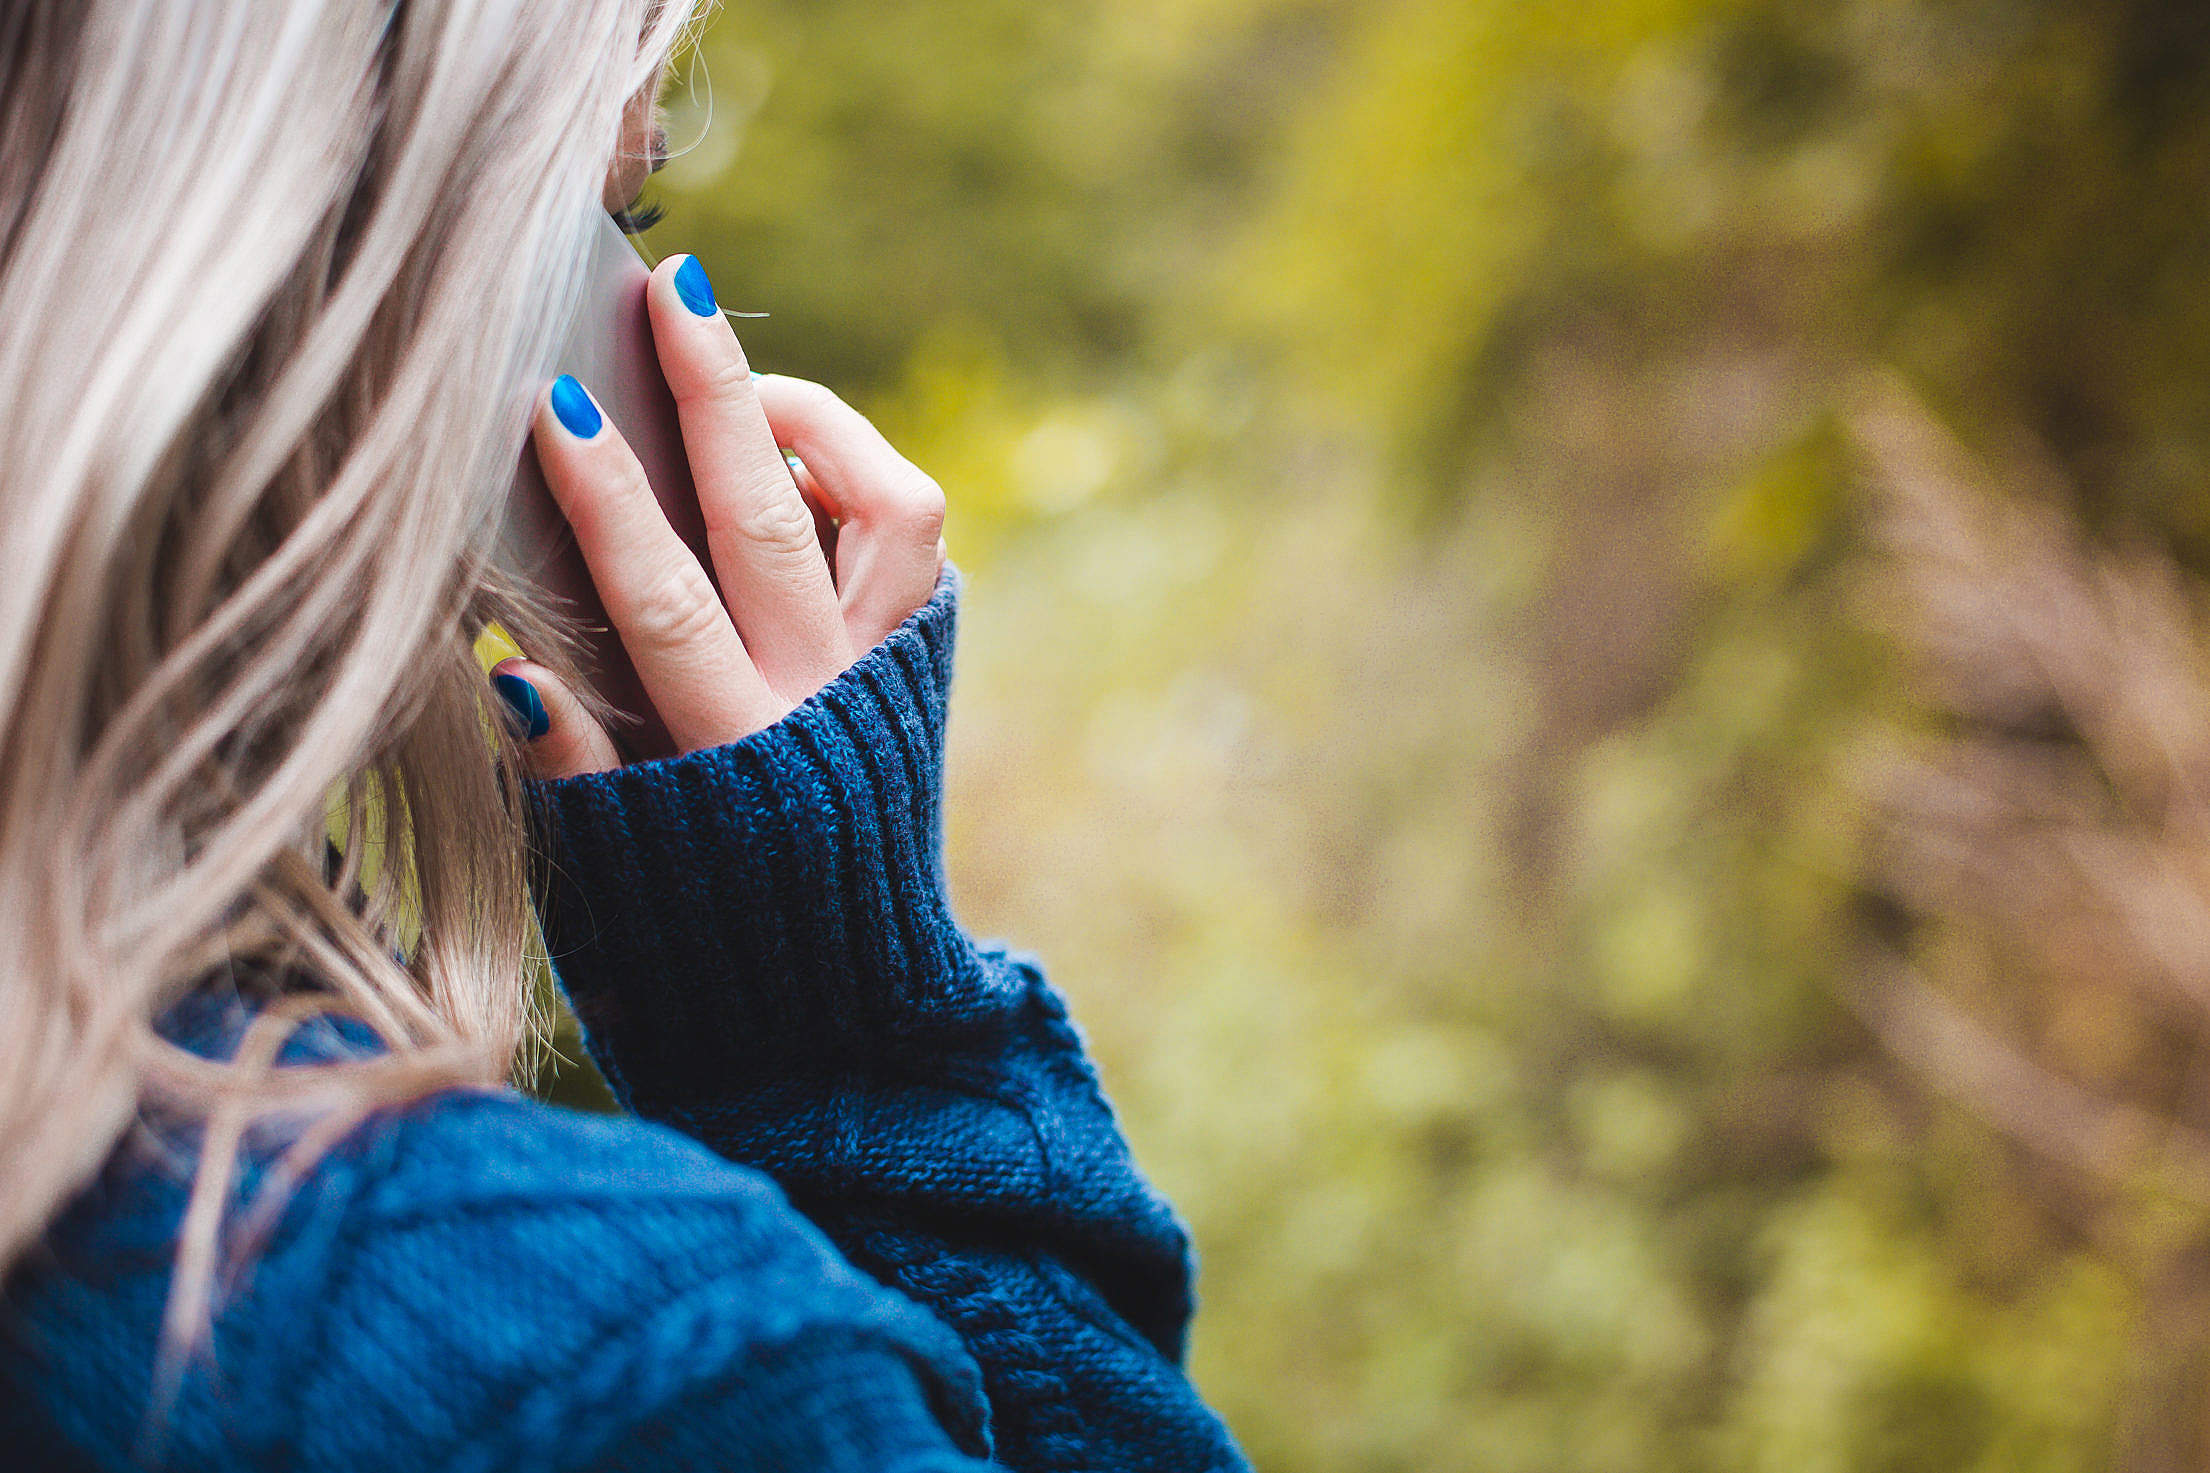 Woman Calling with Her Phone Free Stock Photo